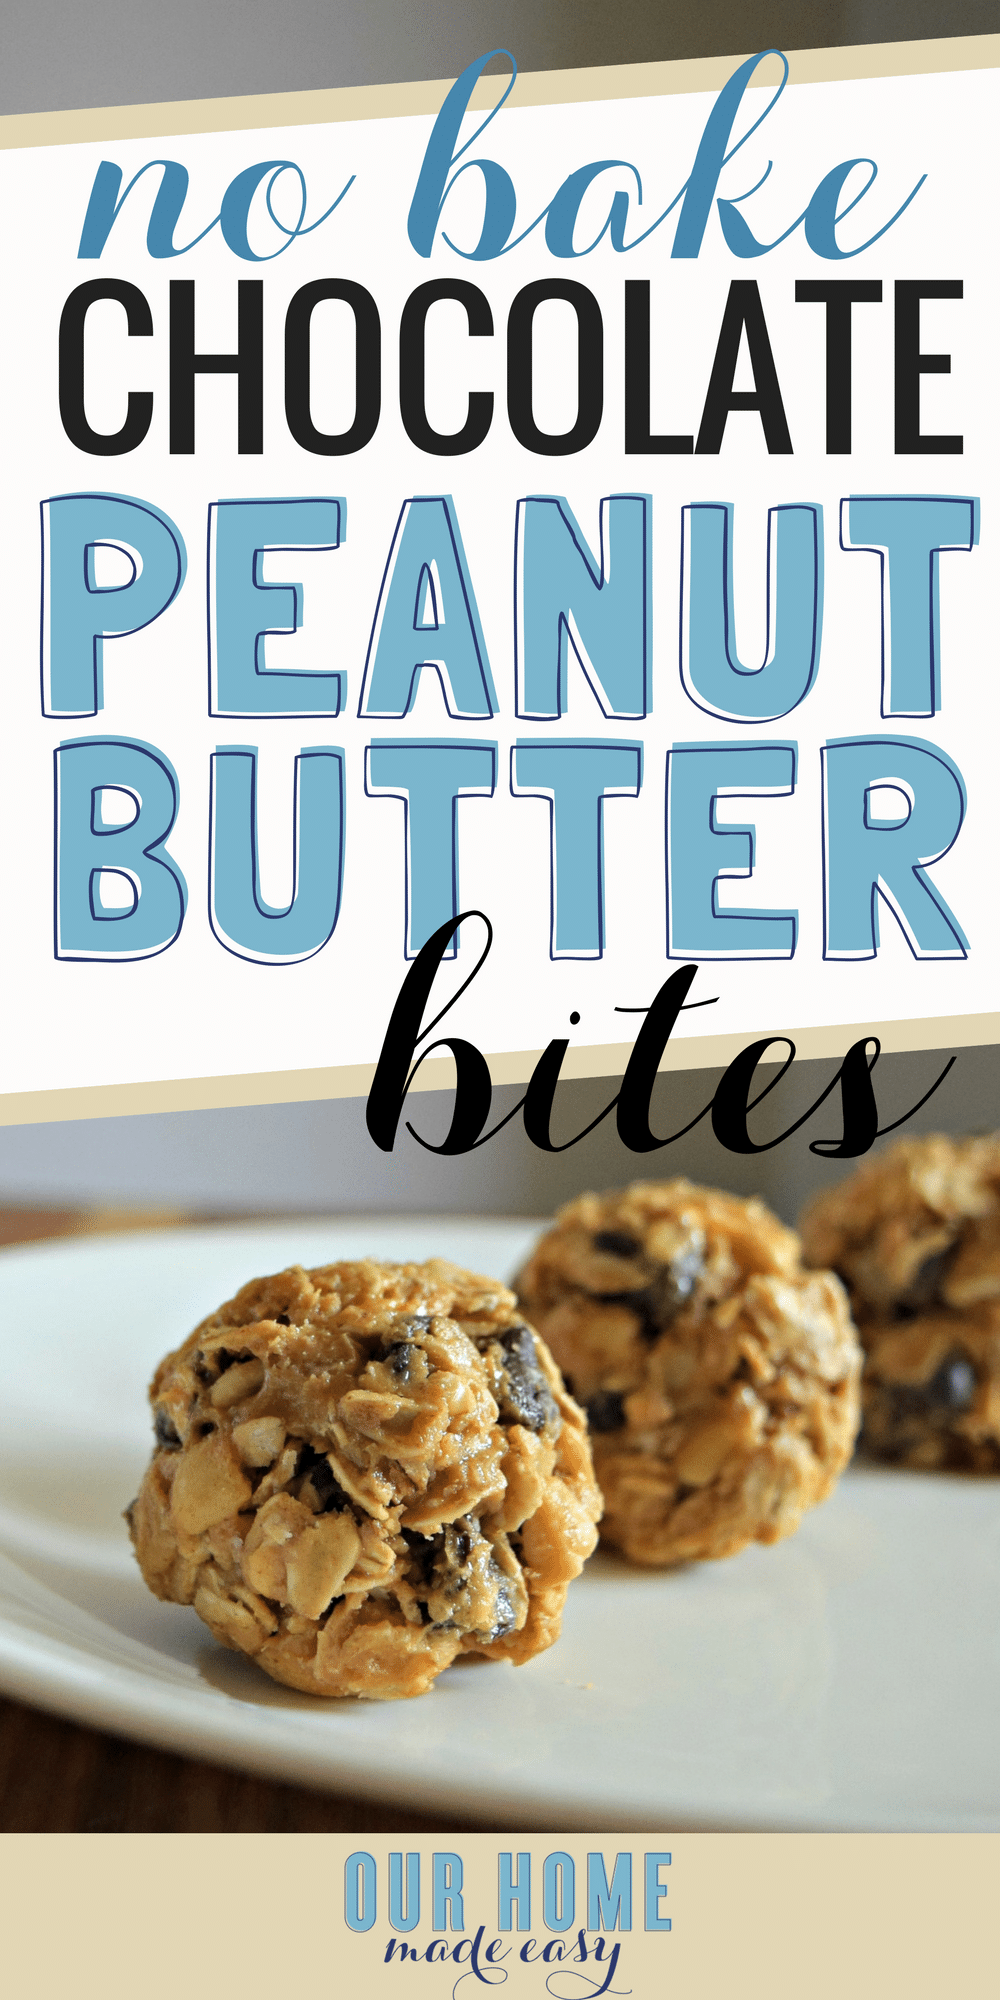 These no bake peanut butter bites are perfect for when you want a snack on the run! They are the perfect energy bites that are salty and sweet. #dessert #bites #oats #breakfast